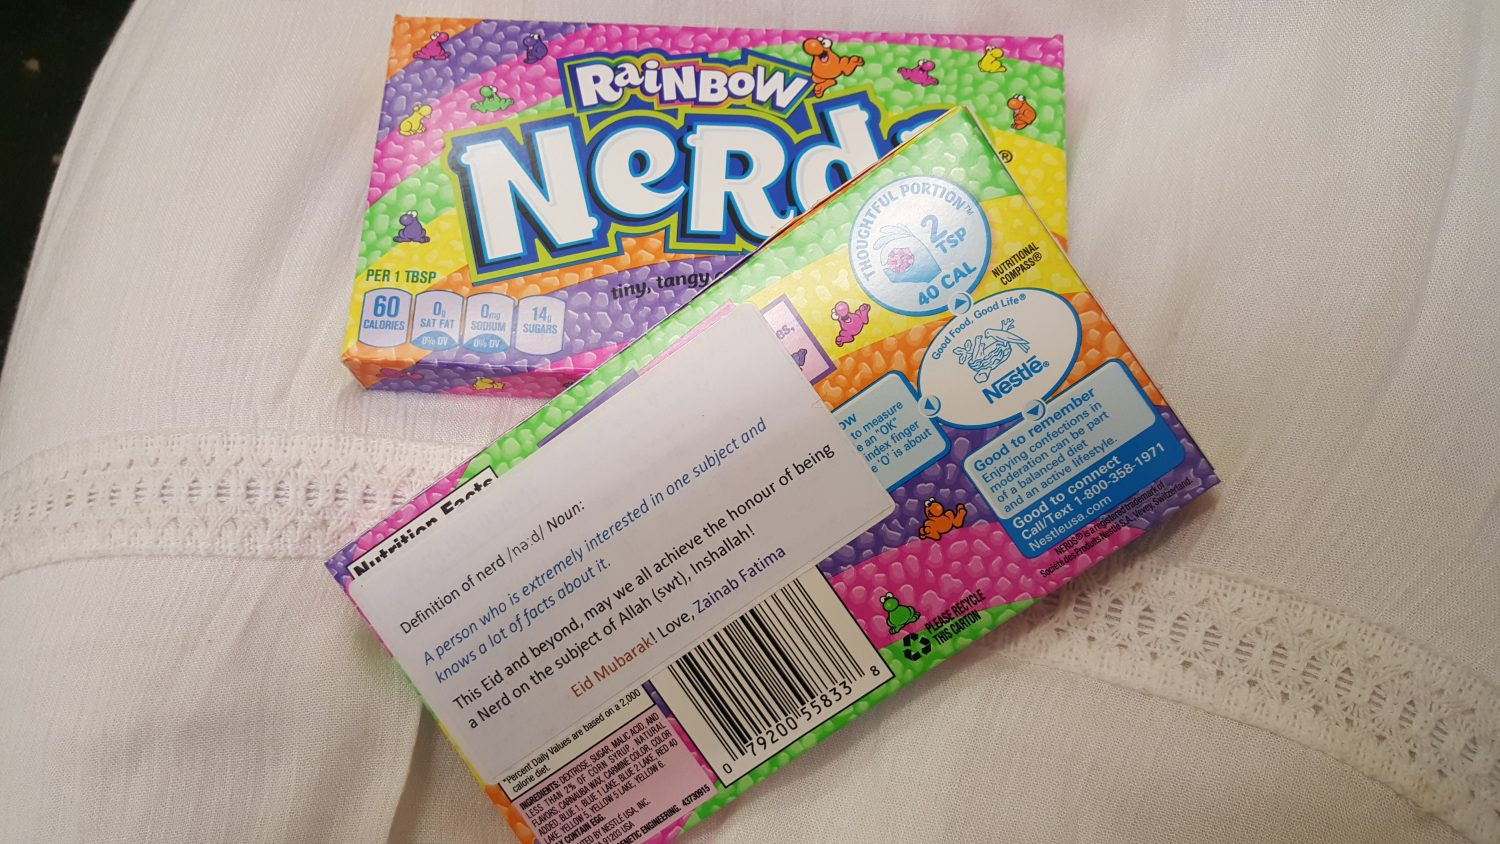 Thoughtful Gift Ideas 52: Nerds (for Allah!)